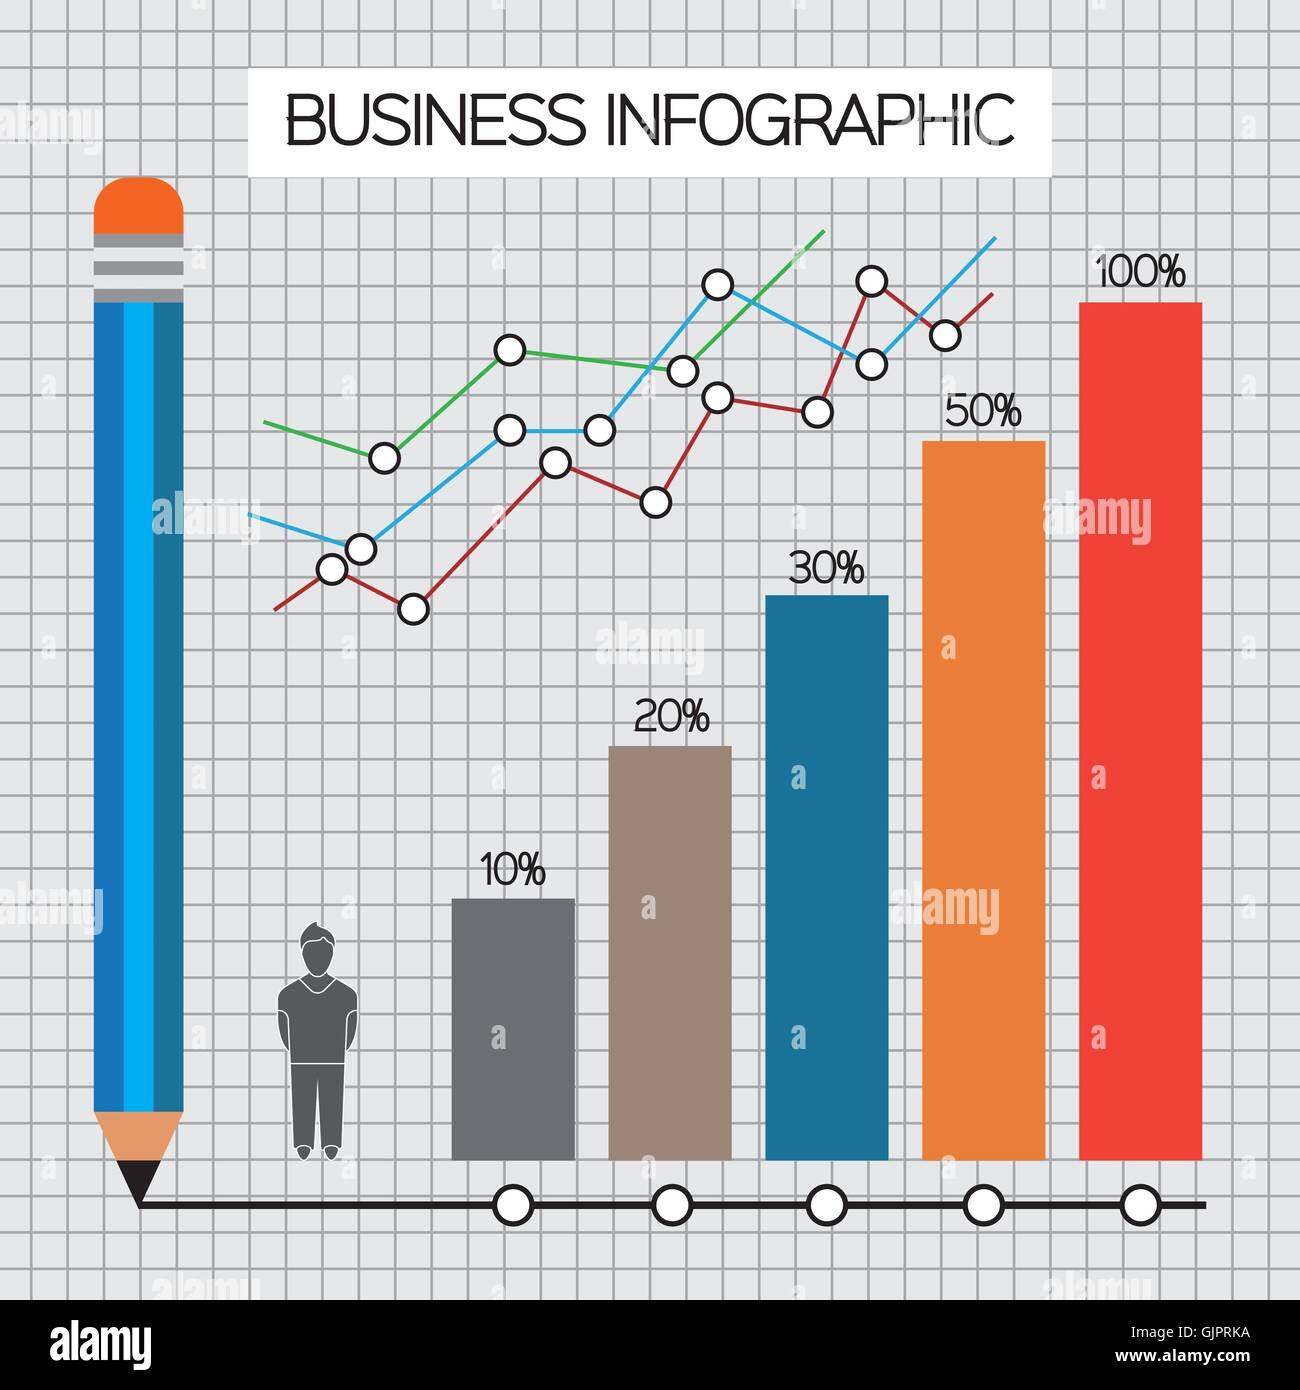 hight resolution of business infographic with icons persons pencil and diagrams flat design digital vector image